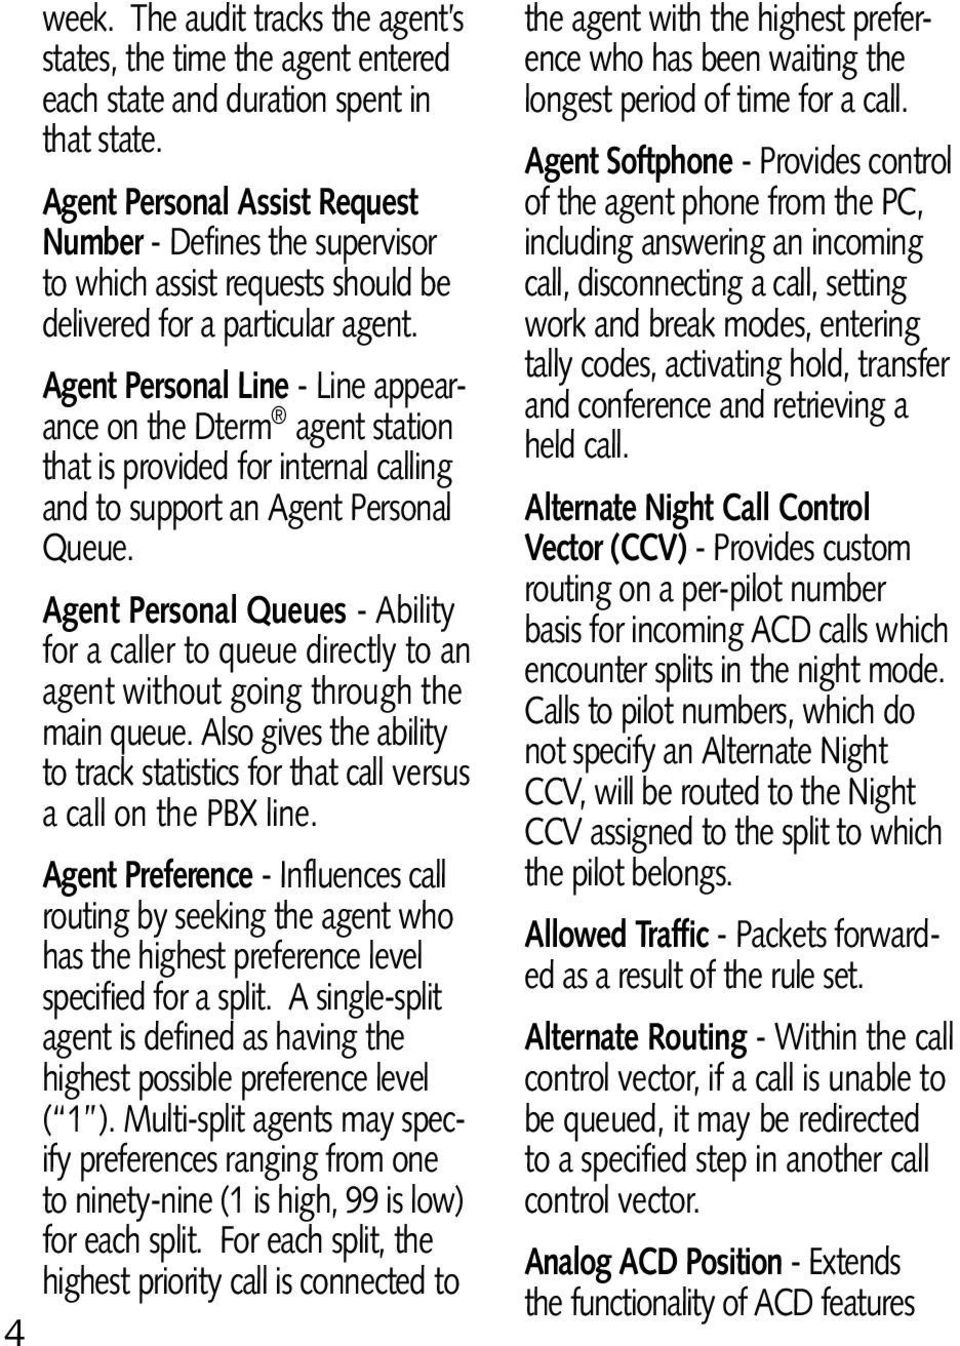 Agent Personal Line - Line appearance on the Dterm agent station that is provided for internal calling and to support an Agent Personal Queue.